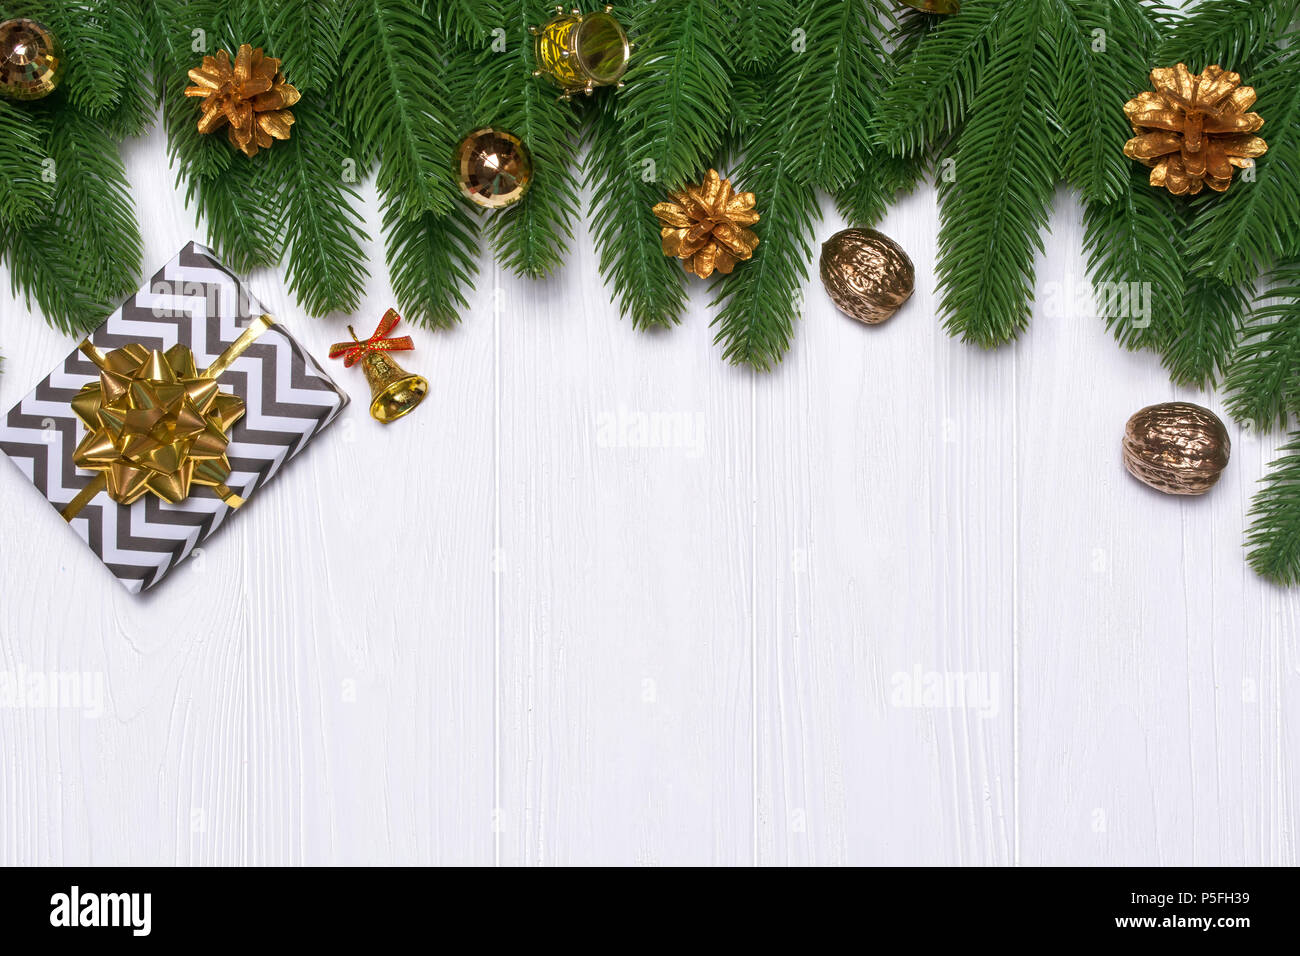 new years border on a white wooden background golden cones a gift a bell a drum christmas decor